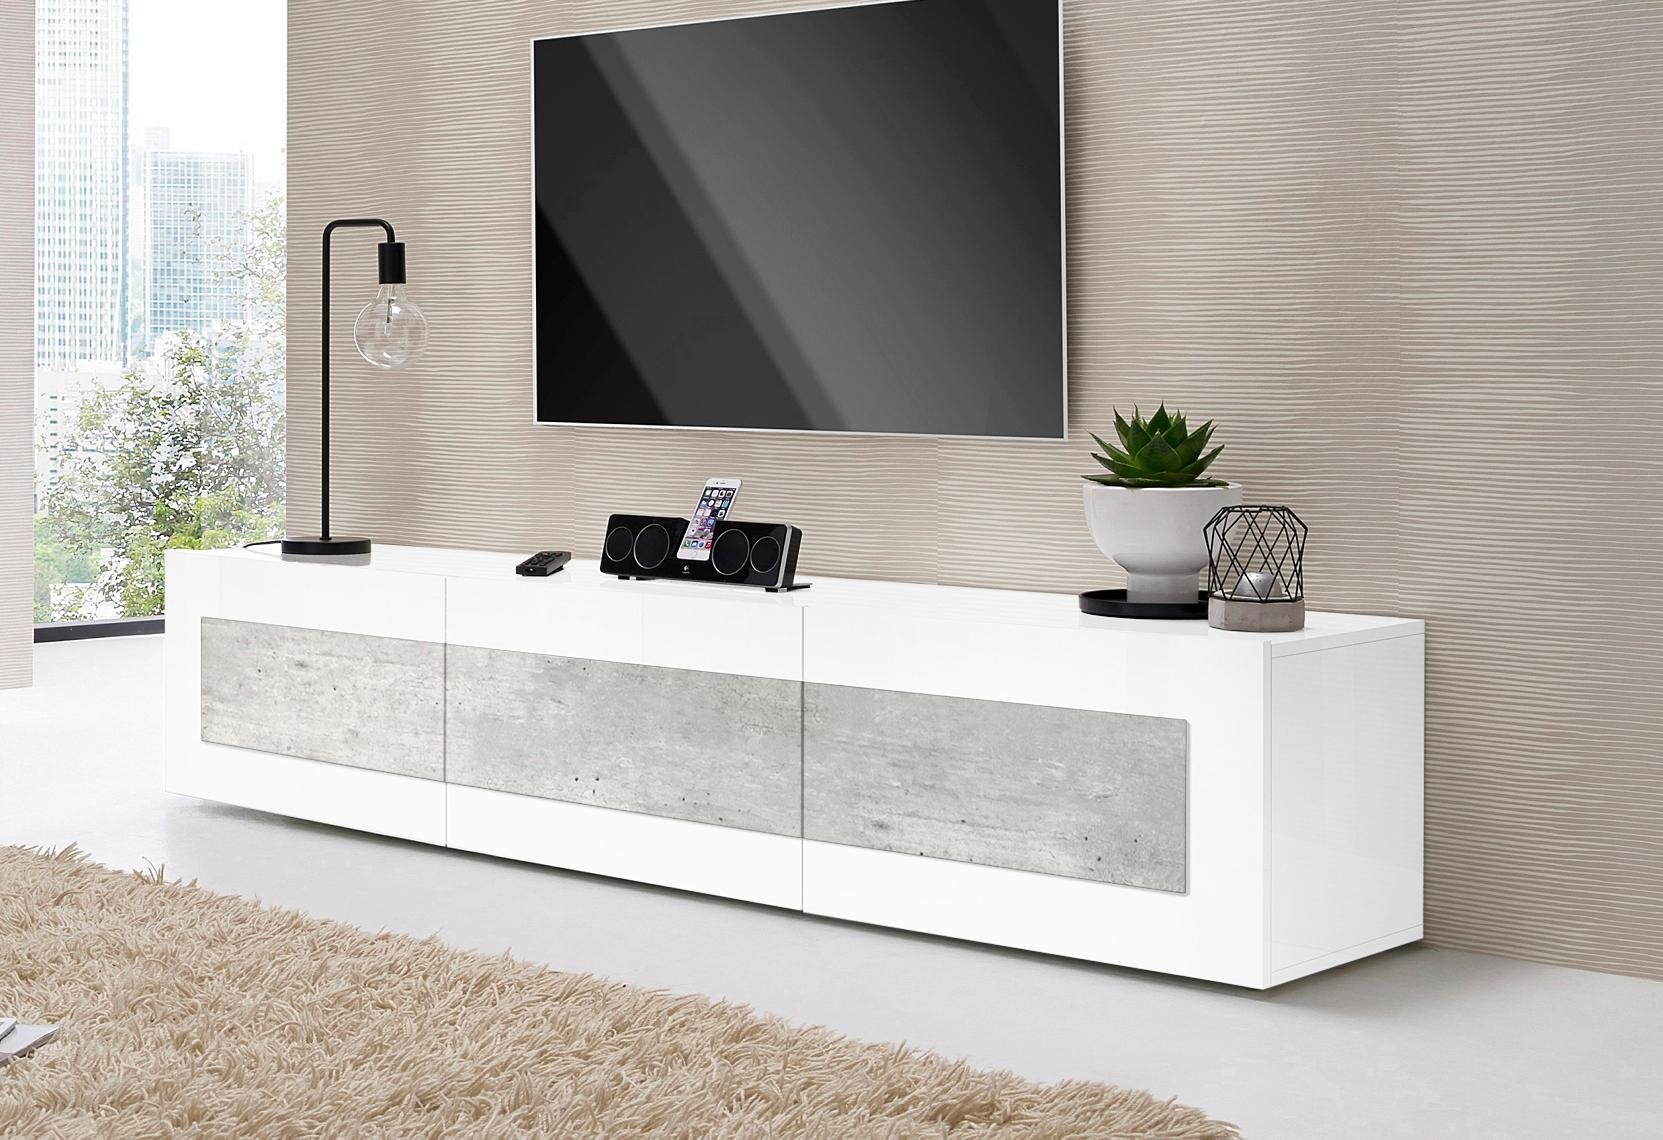 tv meubel 240 cm breed stunning tv meubel 240 cm breed. Black Bedroom Furniture Sets. Home Design Ideas